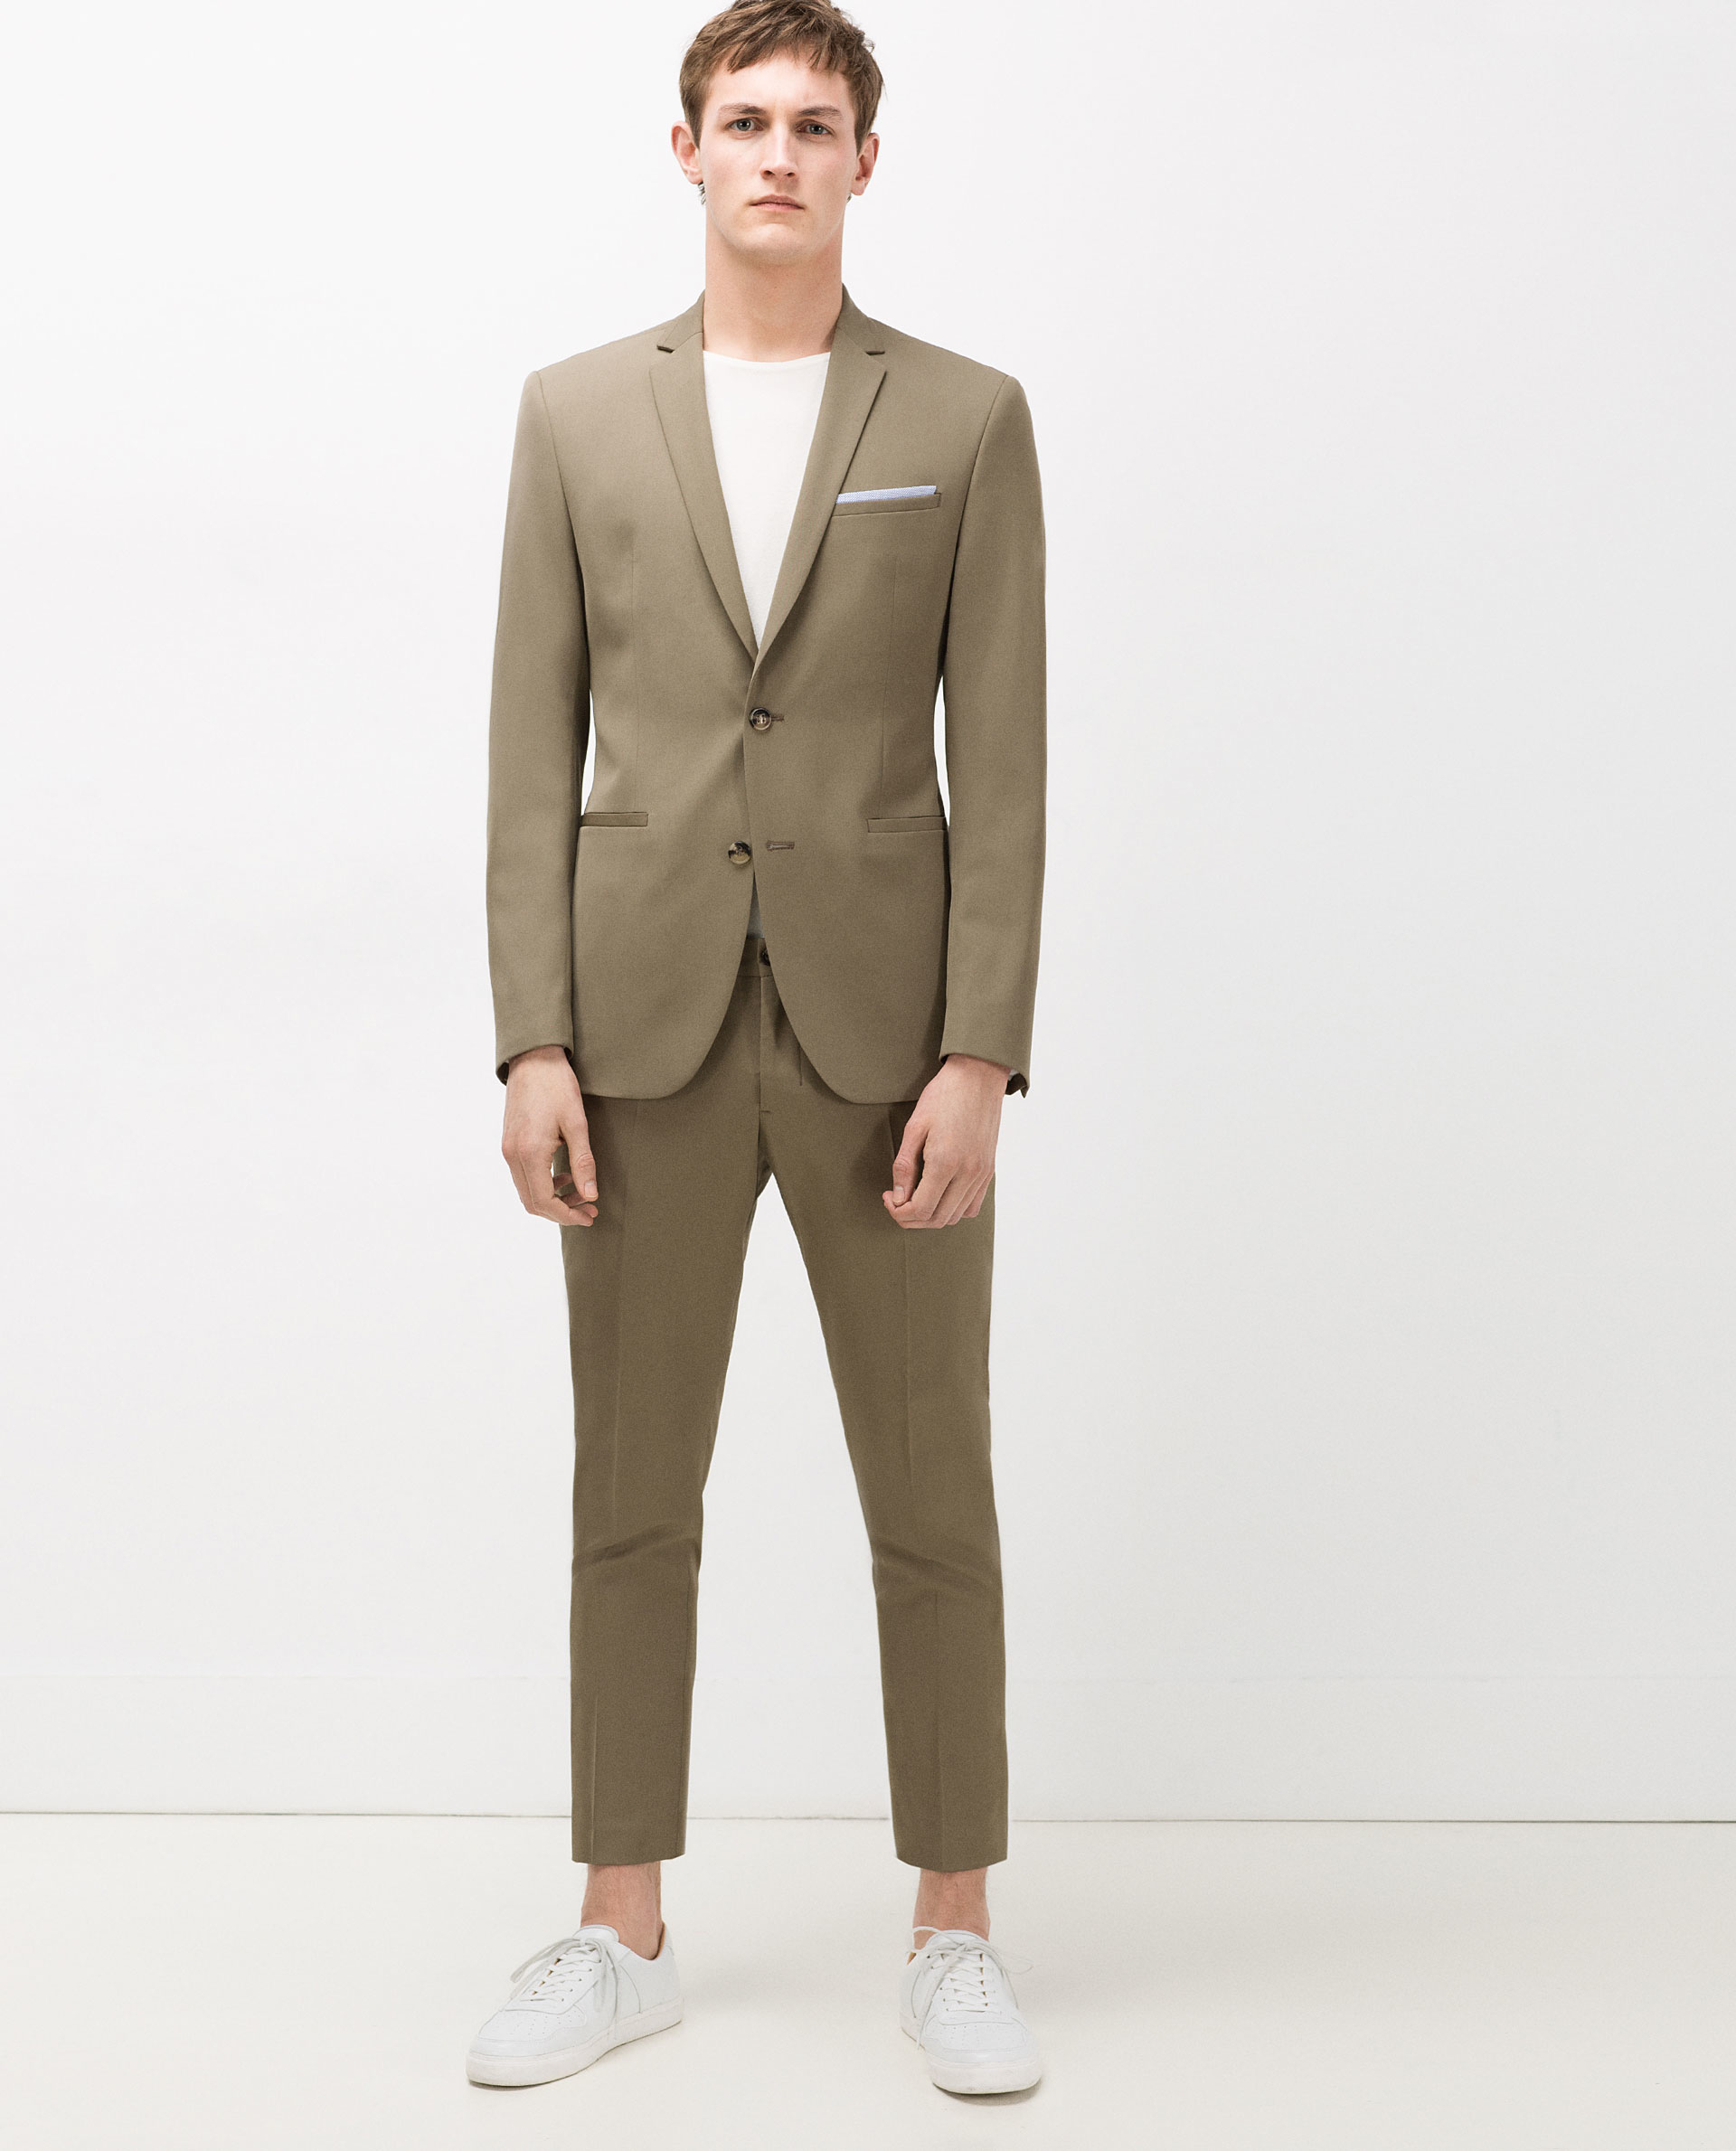 how to wear a suit jacket with khakis